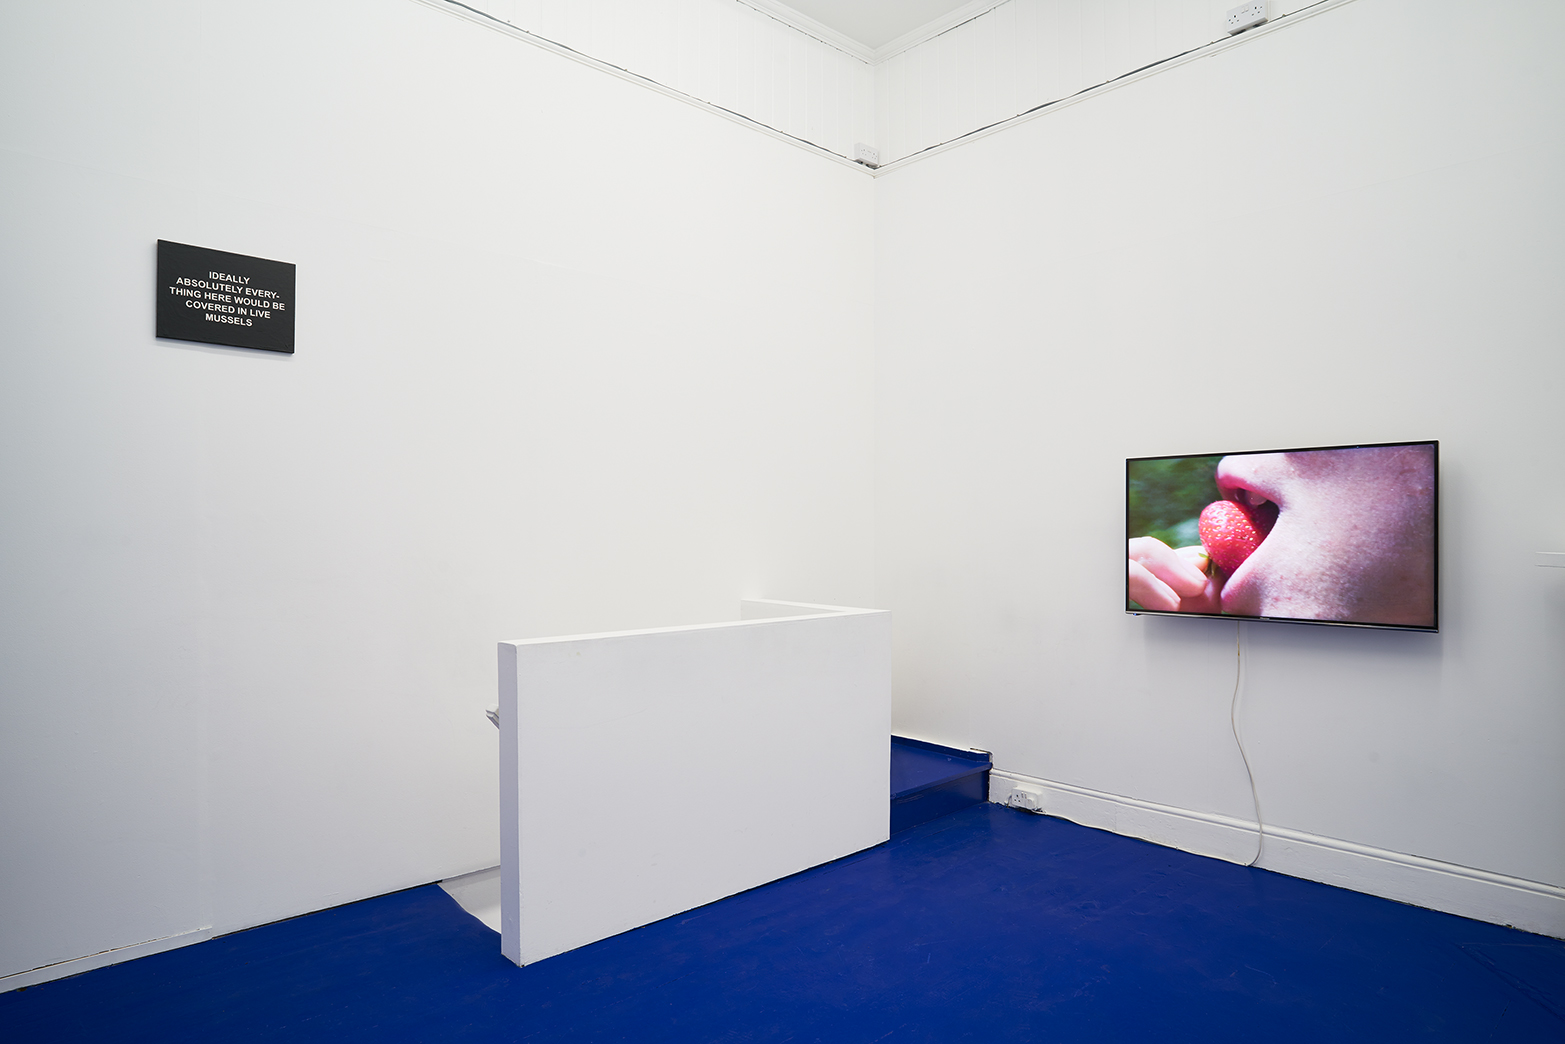 Tropical Hangover, Installation view with works by Laure Prouvost. Tenderpixel.